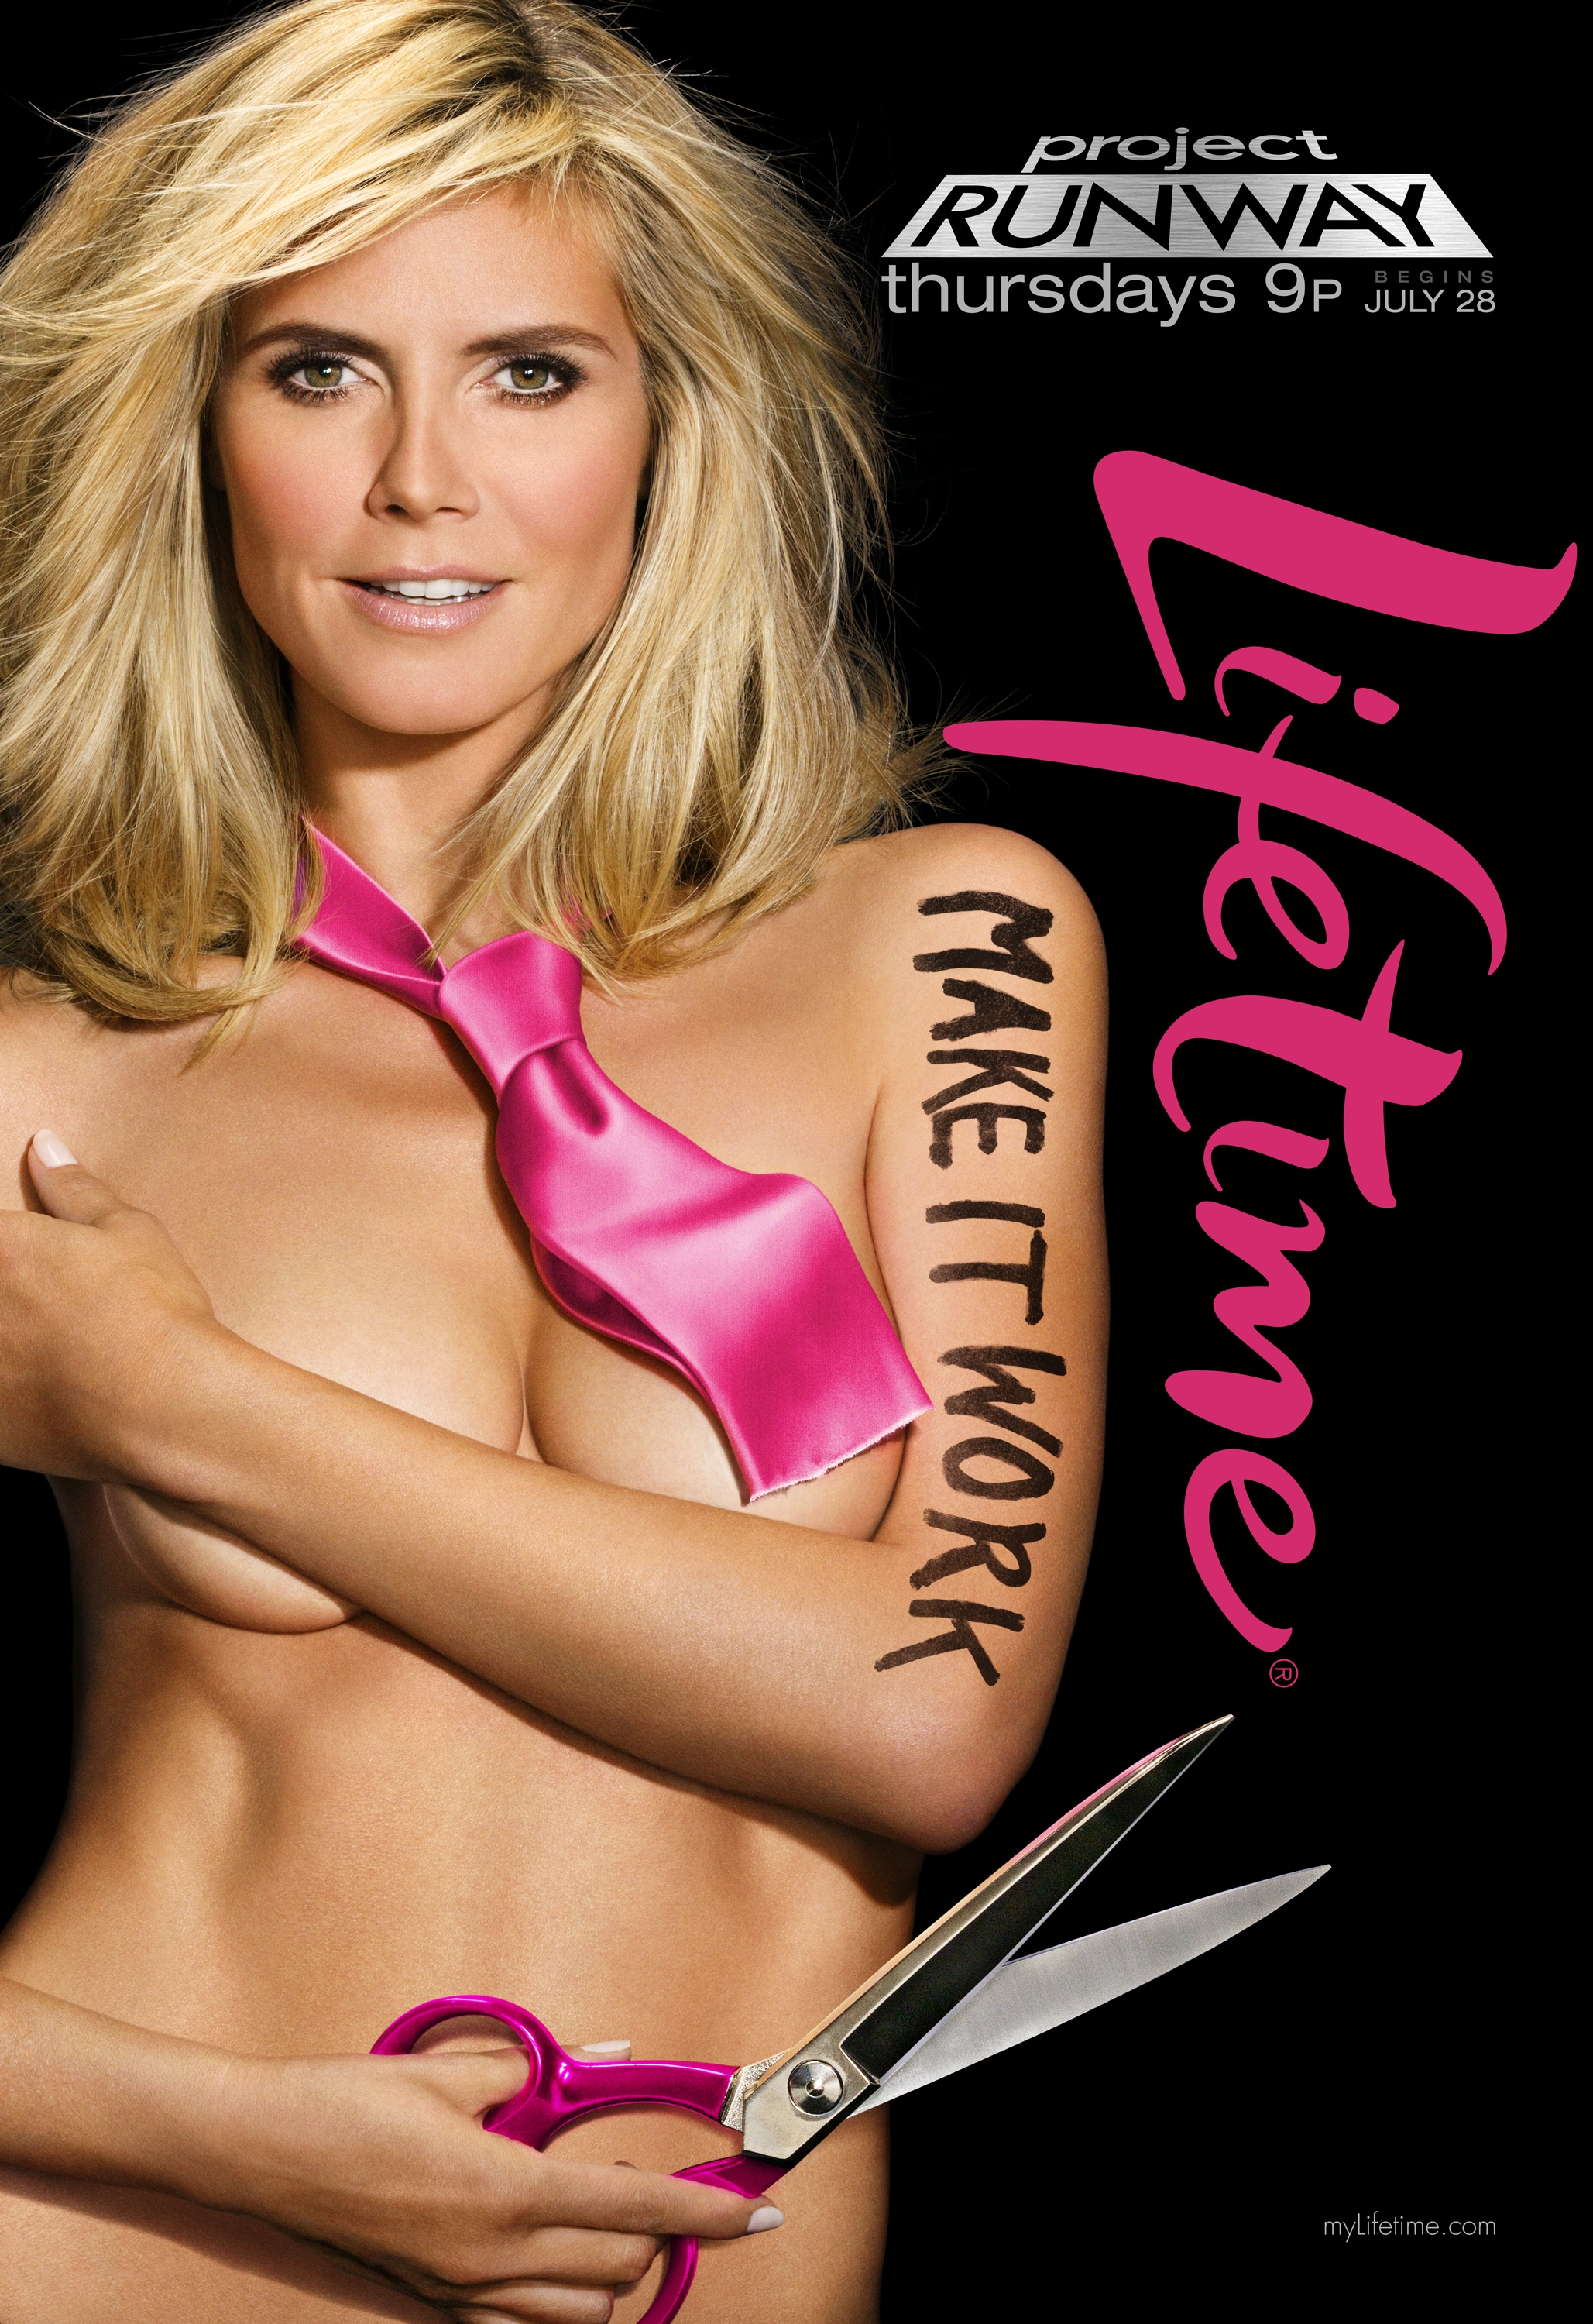 Heidi Klum poses nude in ad campaign for the upcoming